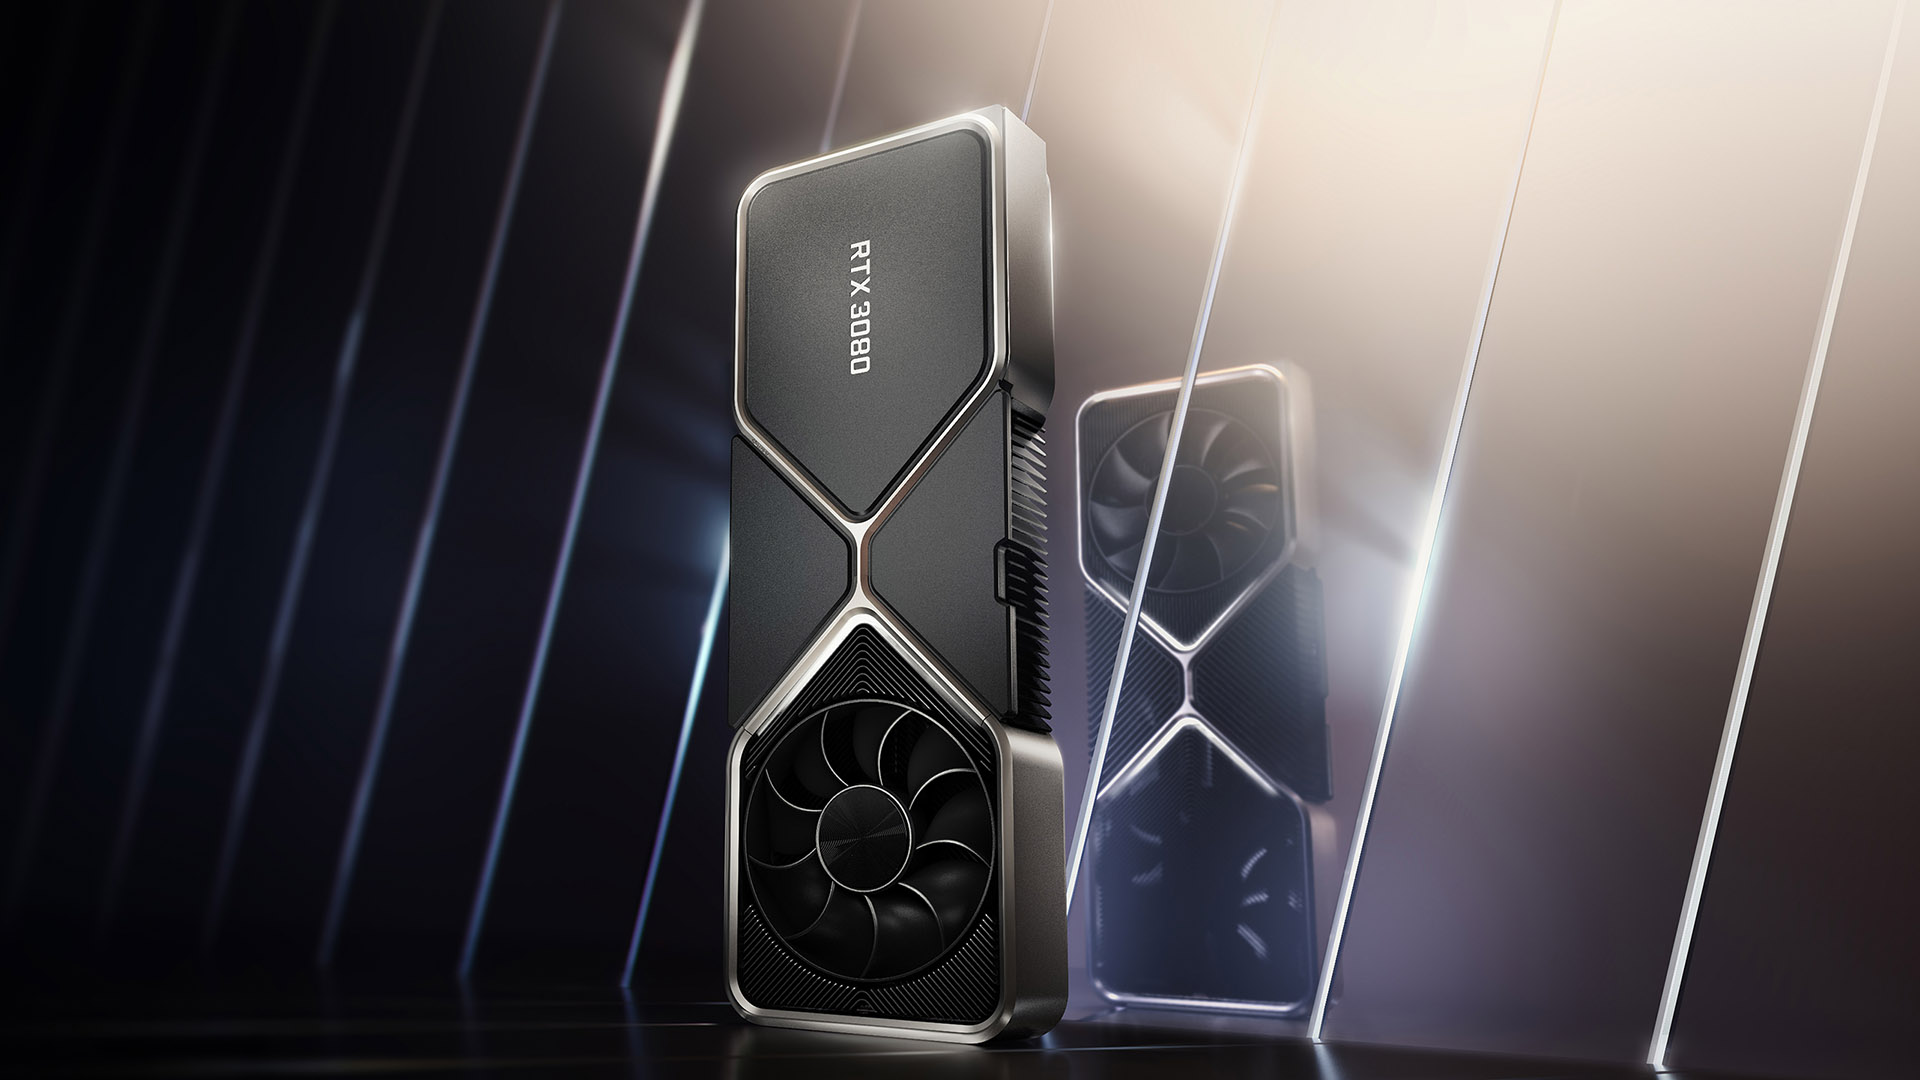 The rumoured Nvidia 20GB RTX 3080 Ti's benchmarks have popped up online